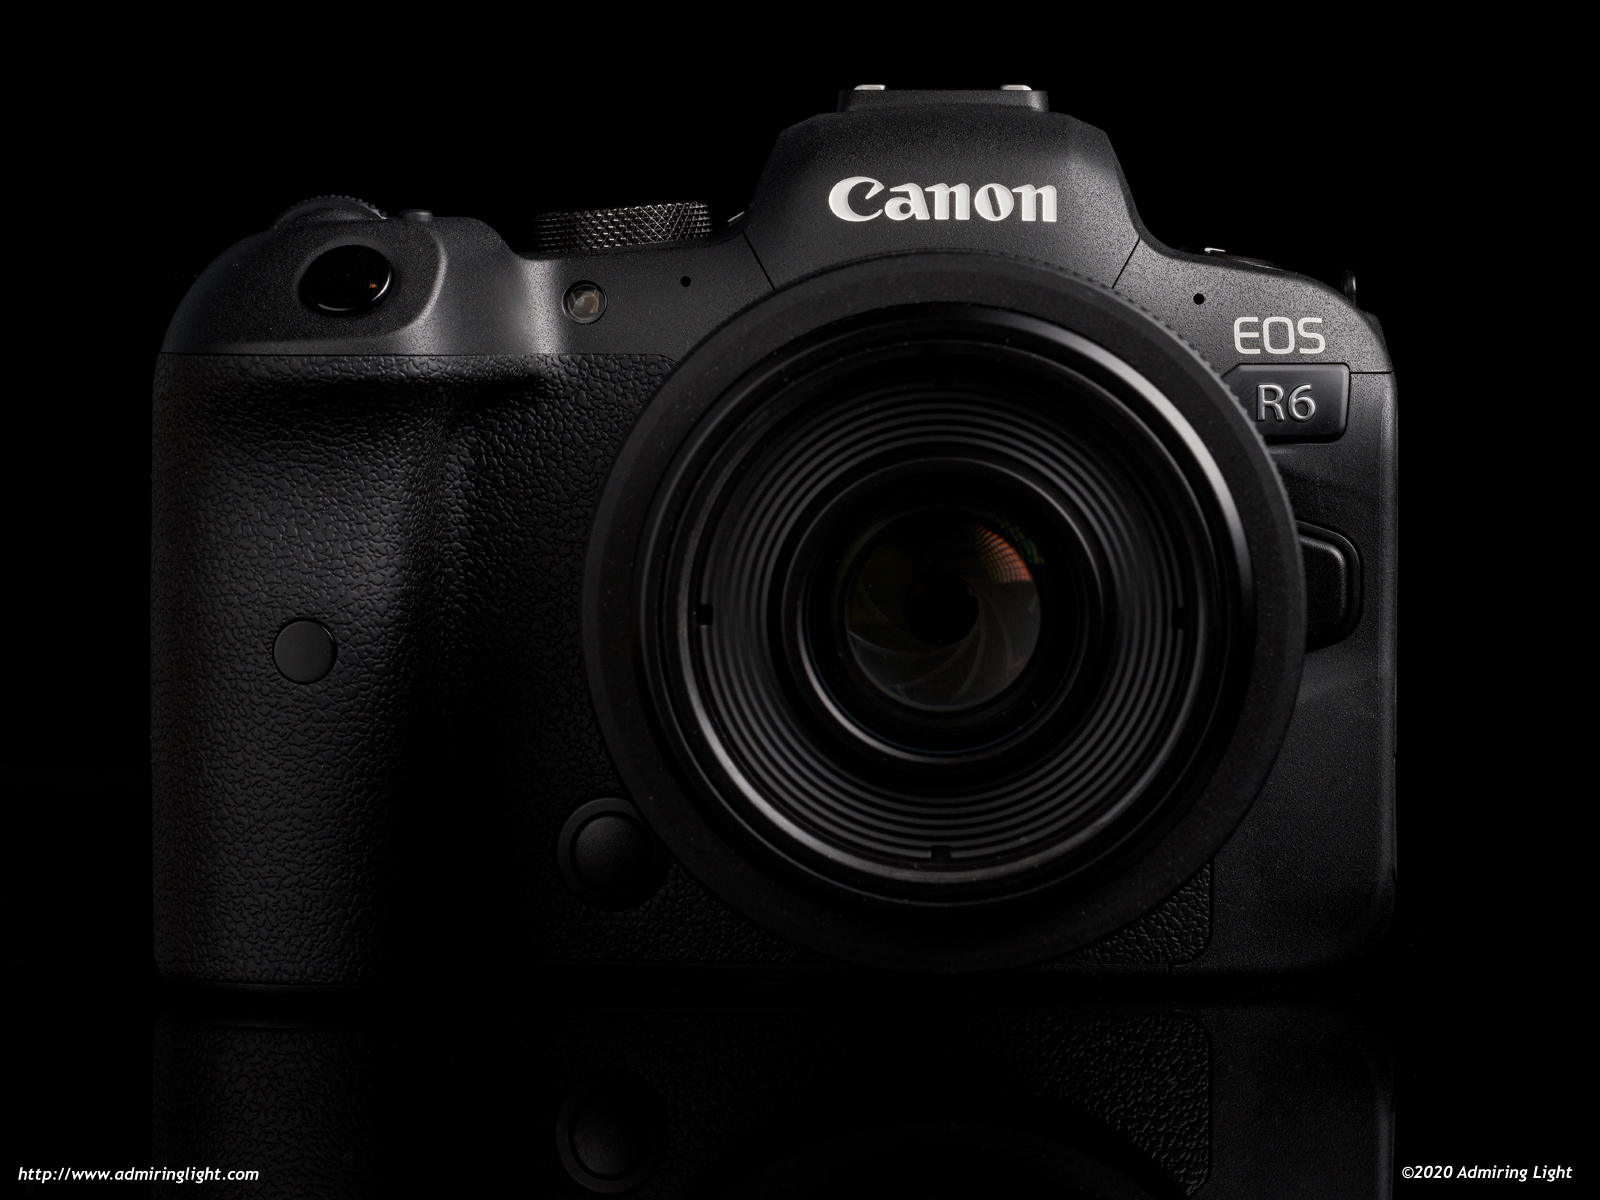 Canon EOS R6 with RF 35mm f/1.8